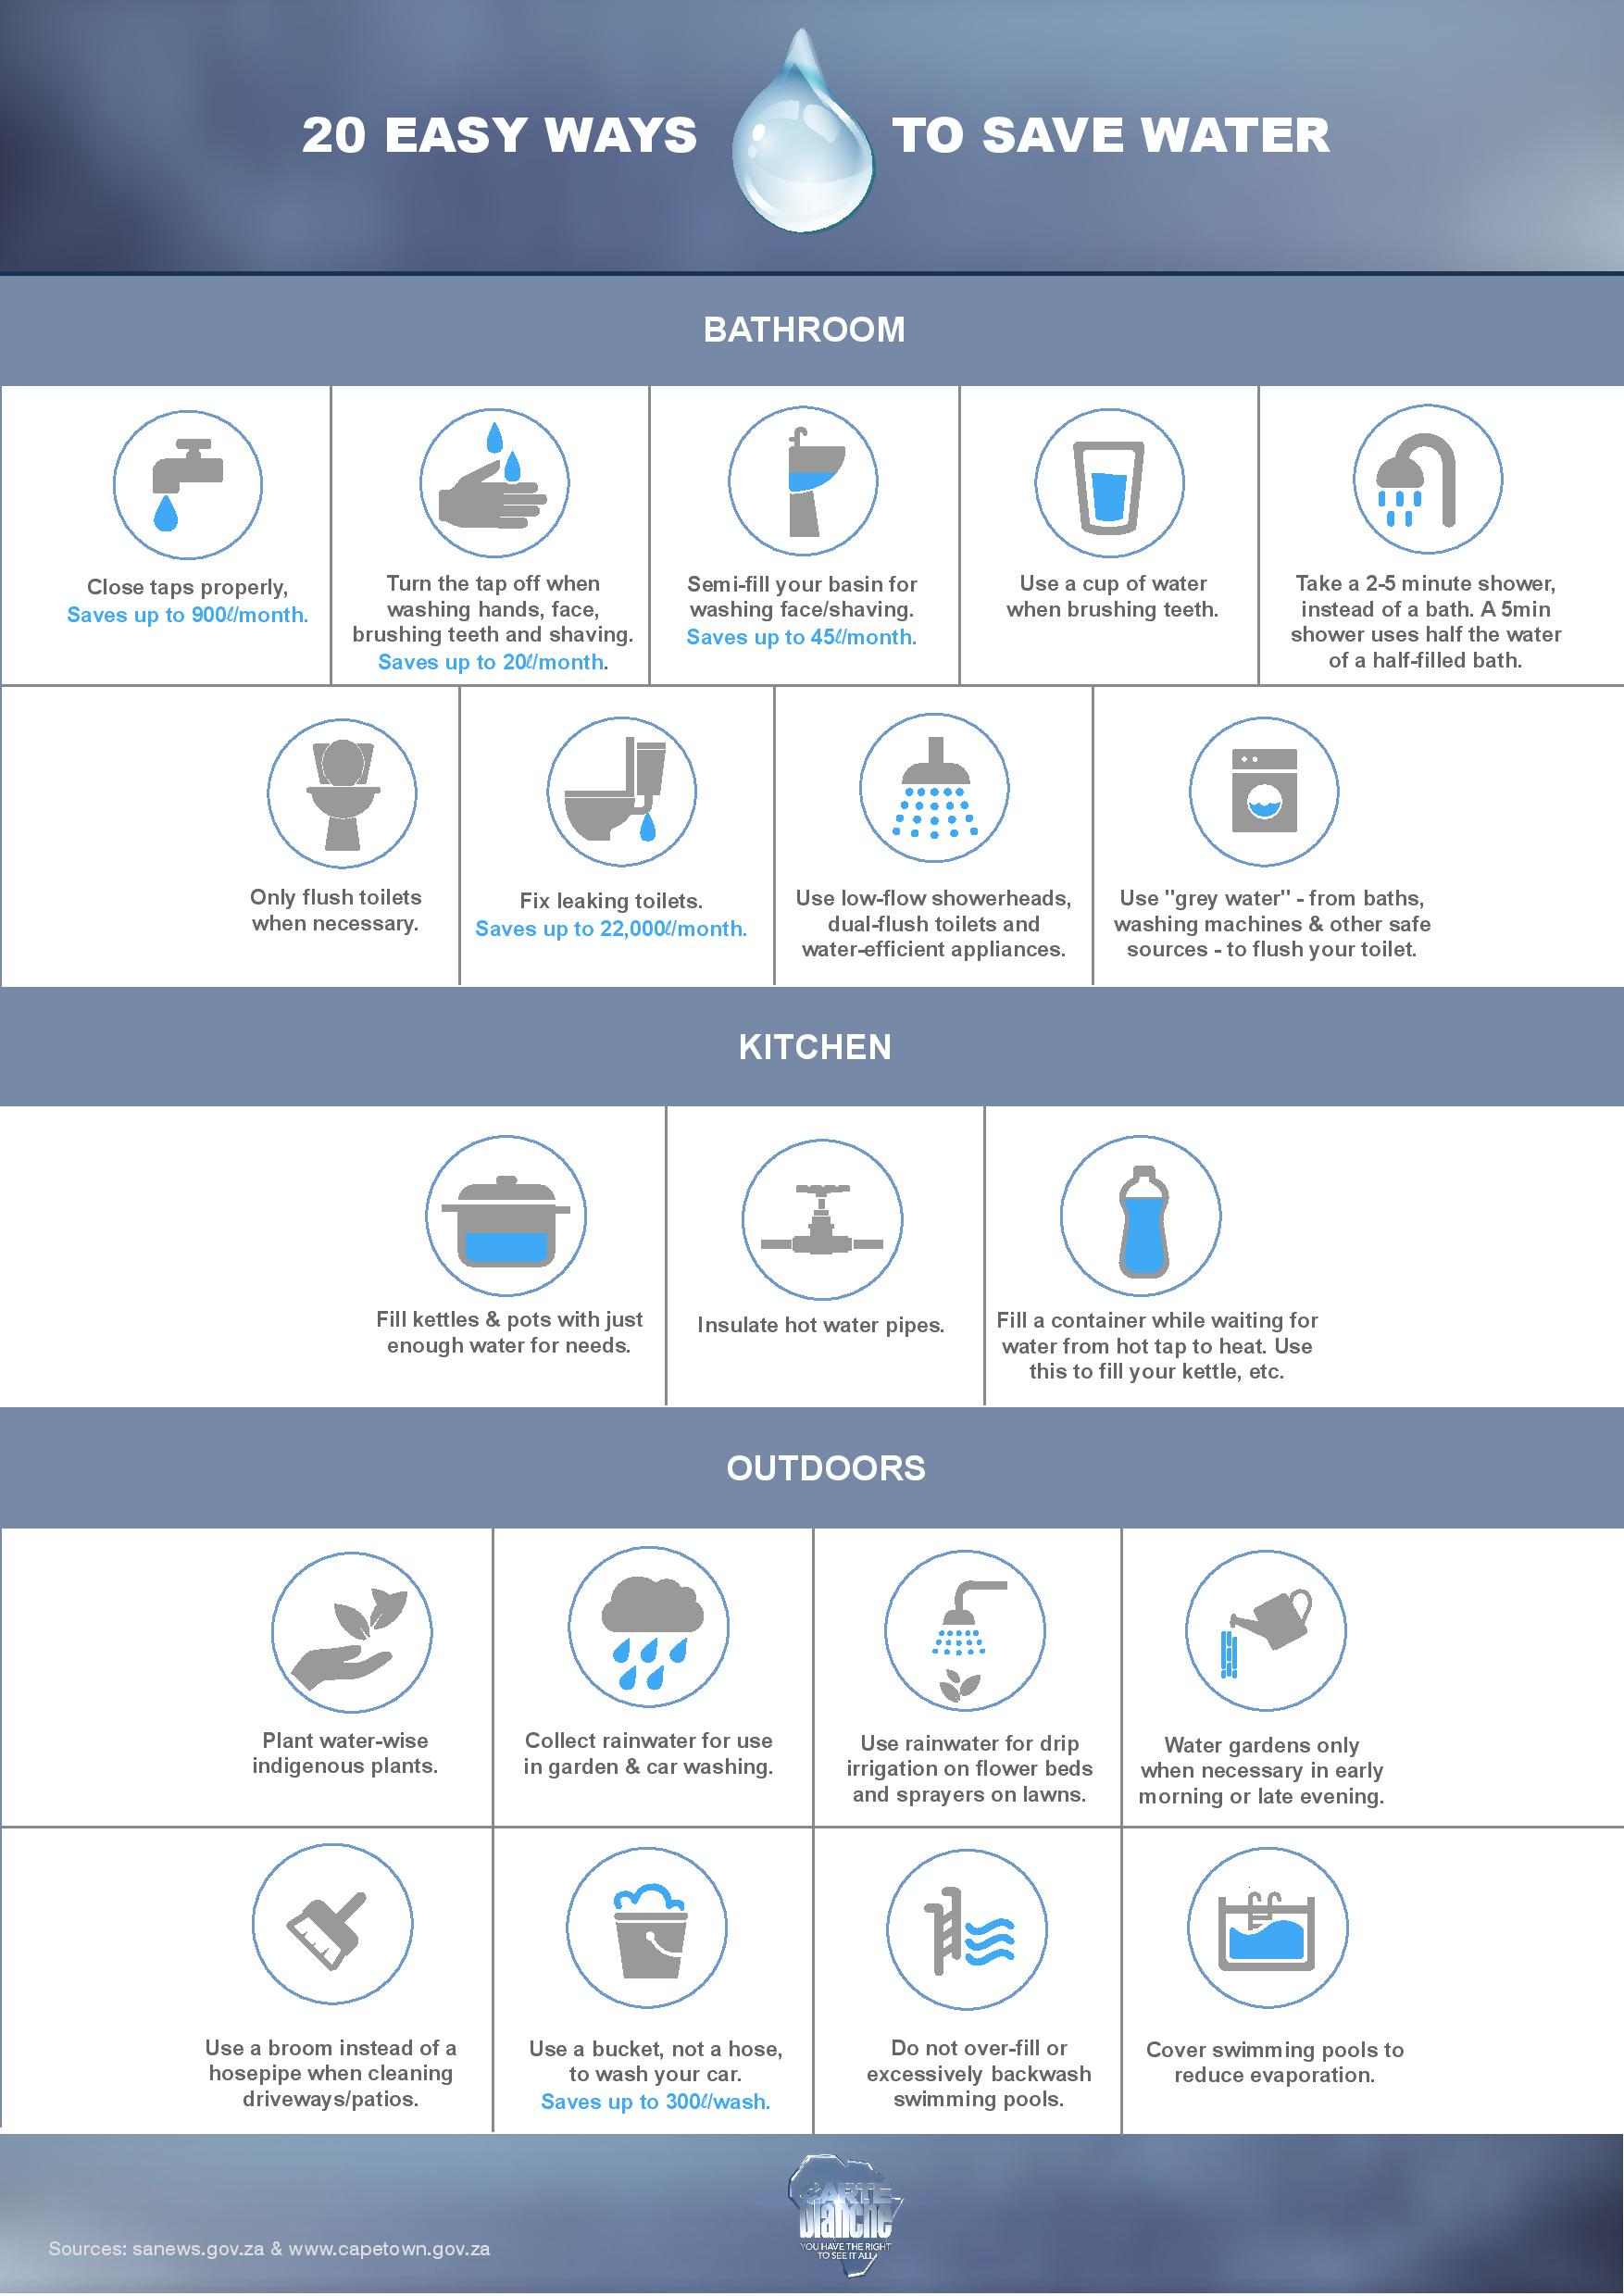 20-easy-ways-to-save-water-infographic--page-001